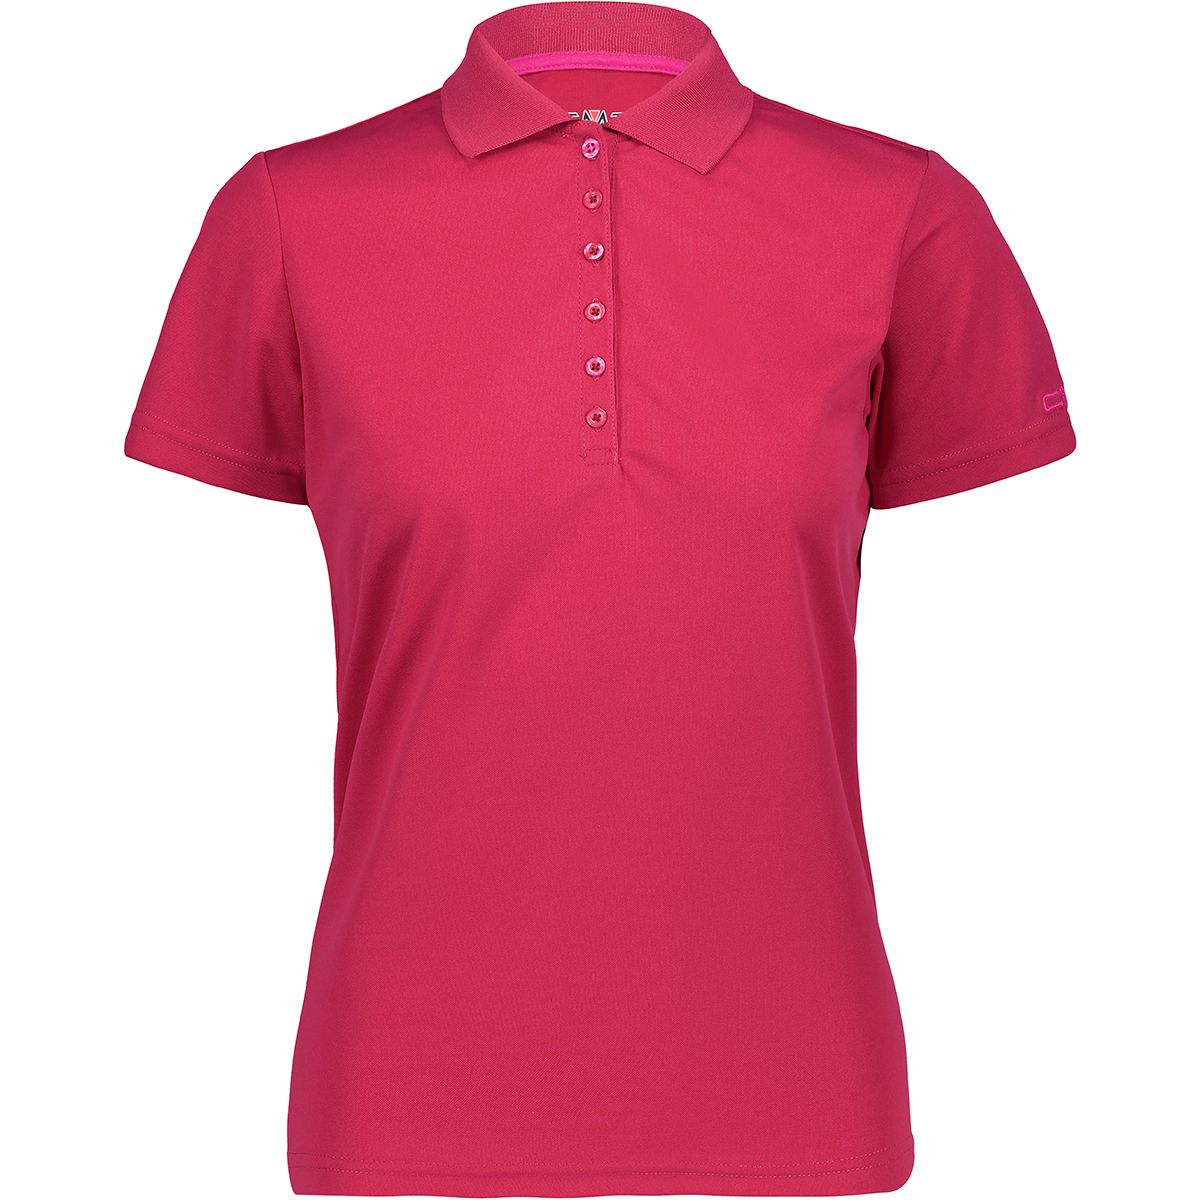 CMP Damen Polo T-Shirt (Größe XS, Pink) | T-Shirts Funktion > Damen